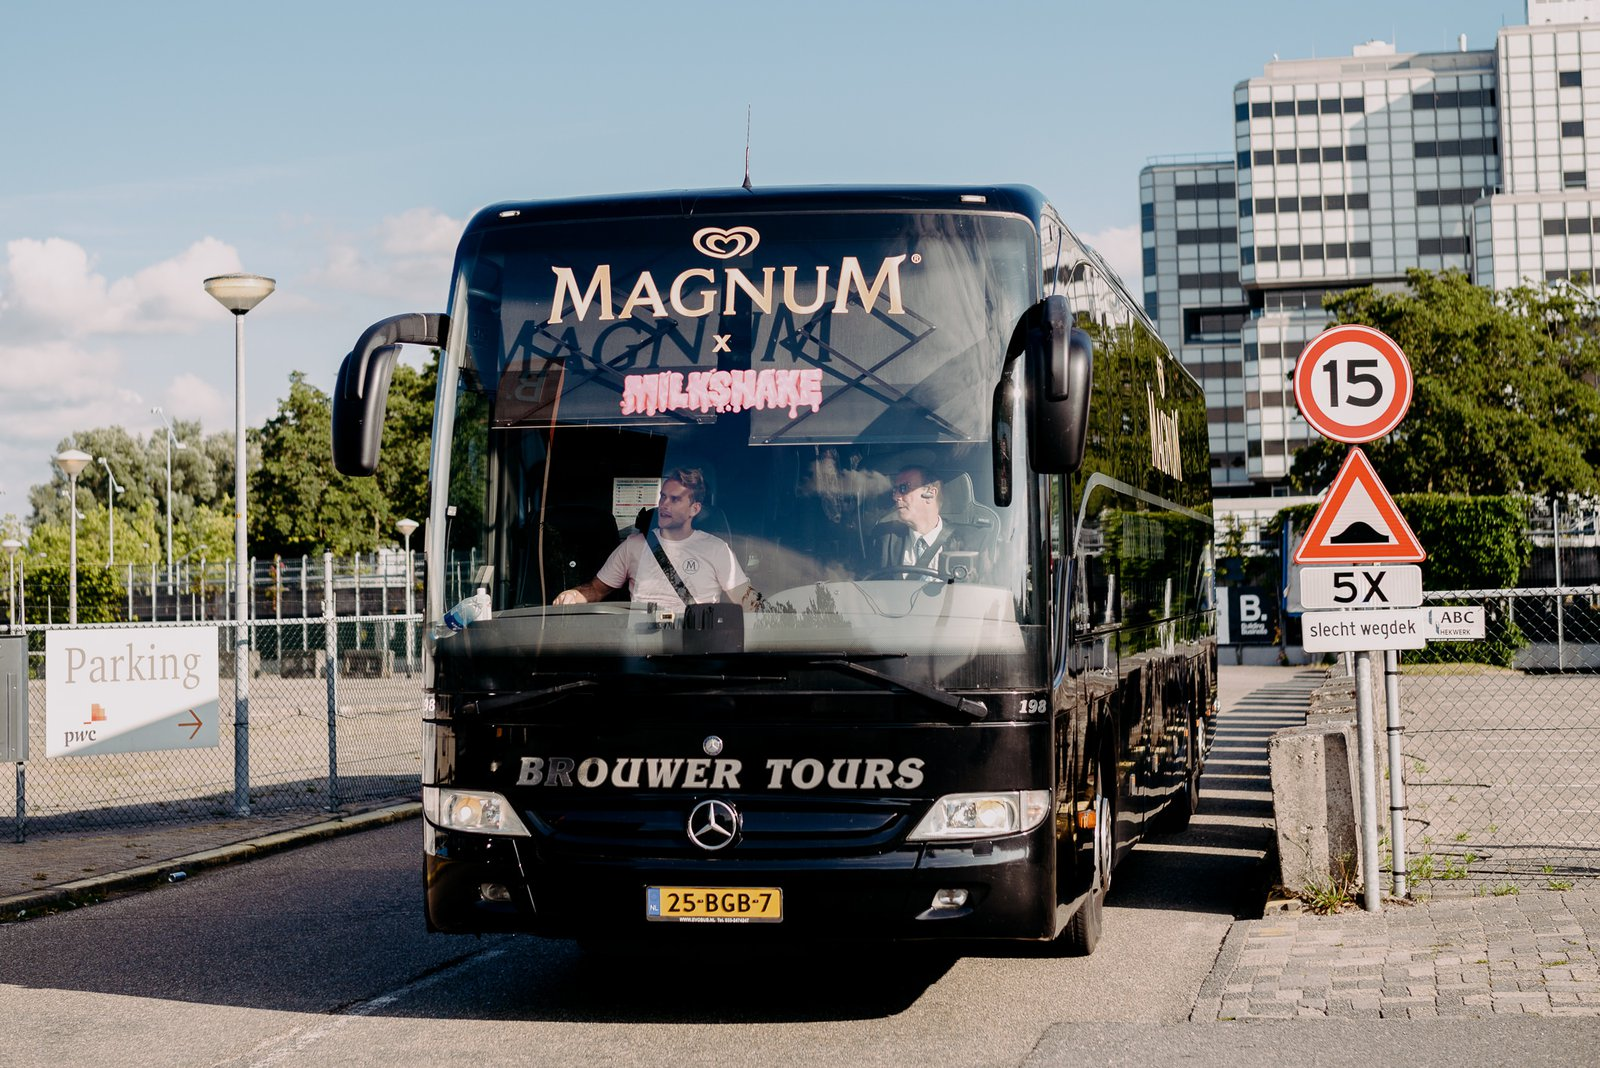 Magic Milkshake Soiree Magnum bus